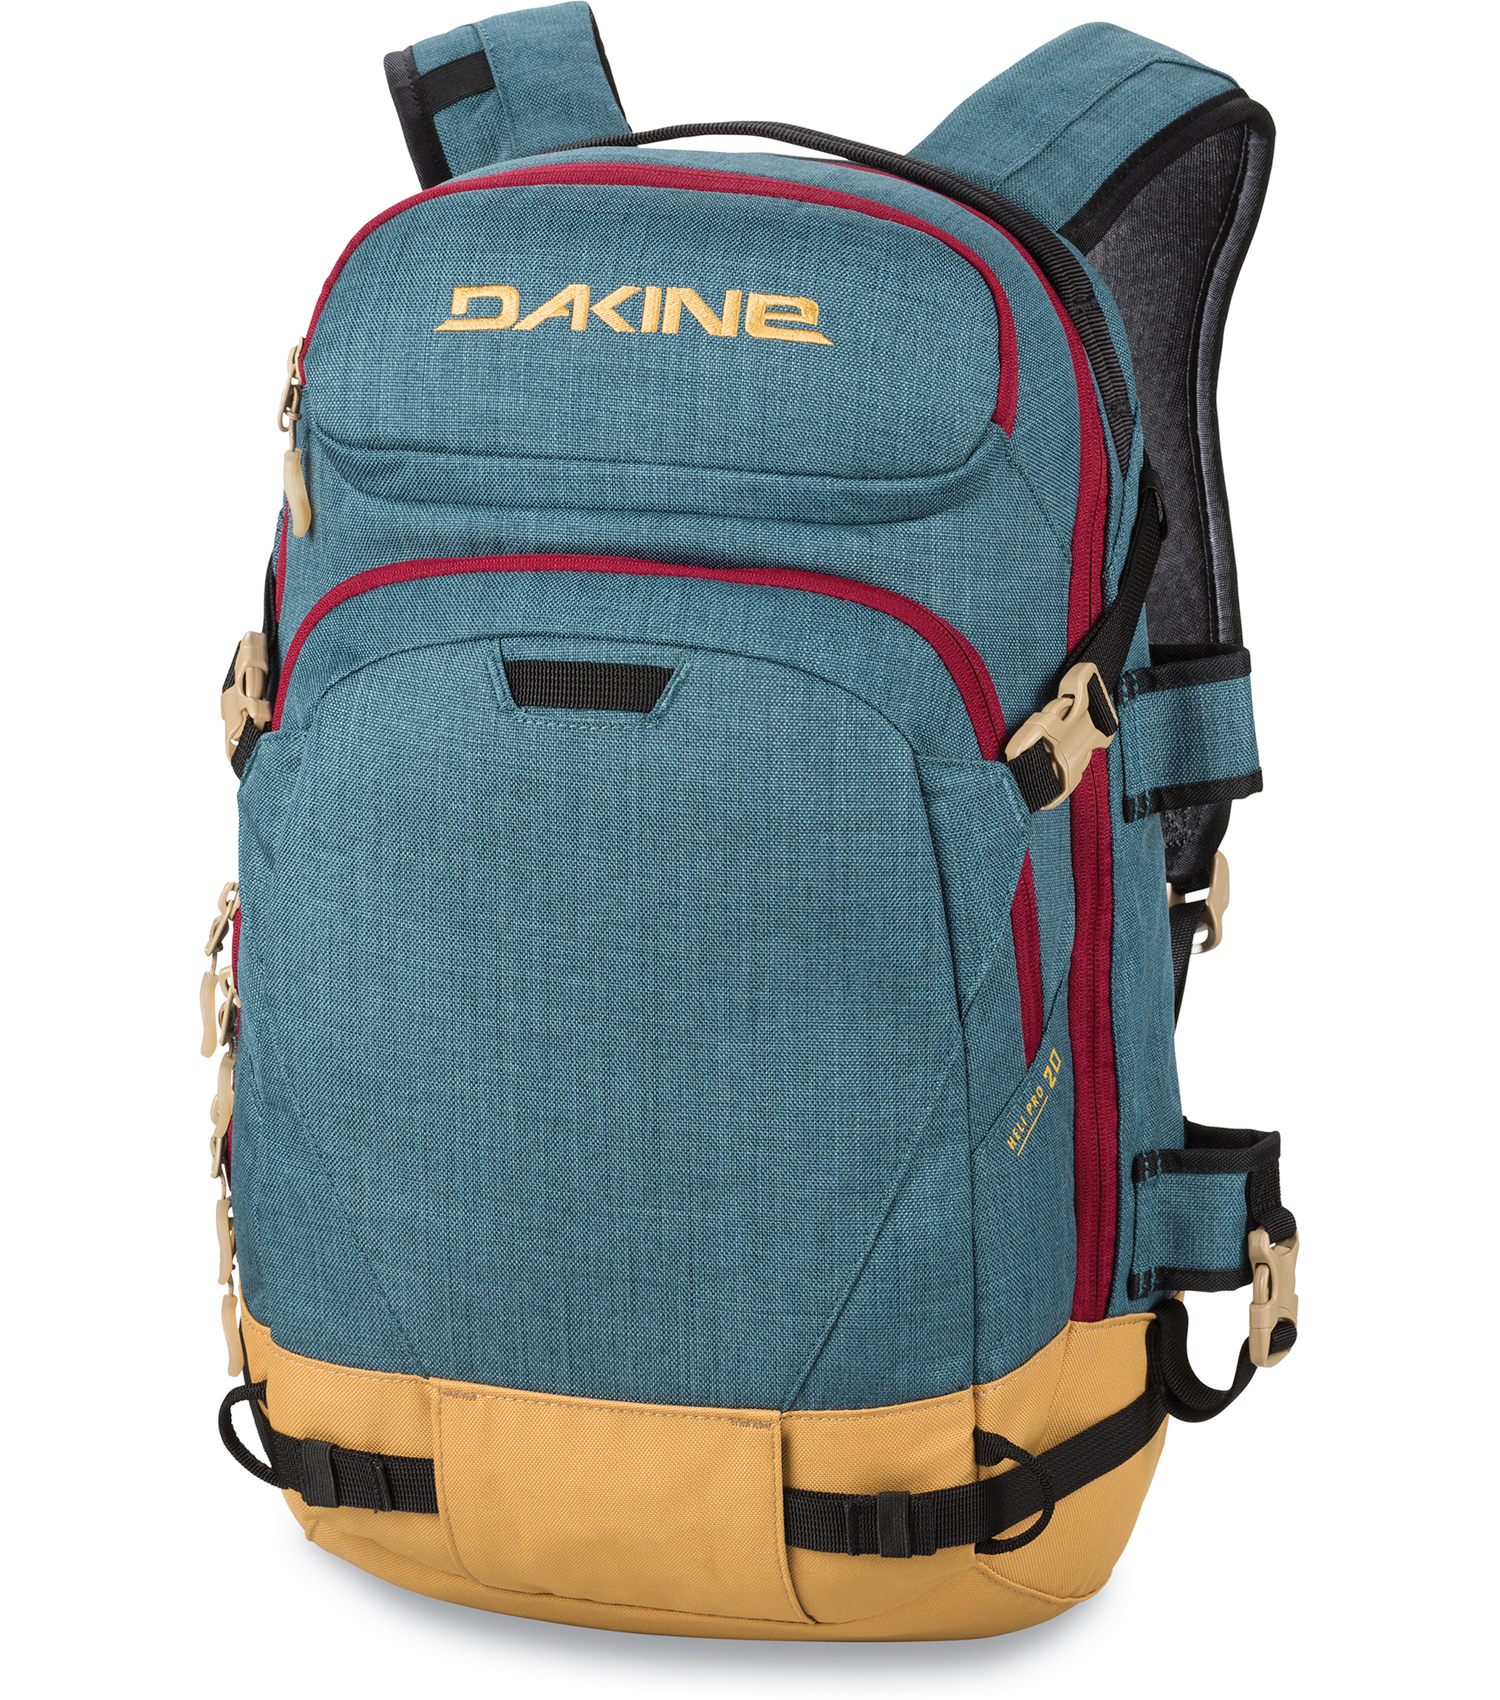 dakine heli pro sale with 371754304403 on Dakine backpacks   dakine heli pro 20l snow pack   black 223362 as well Dakine Heli Pro Dlx Backpack 18l Womens as well 272023032748 likewise Dakine Heli Pro 20l Backpack further Dakine backpacks   dakine womens heli pro dlx backpack   black 146144.